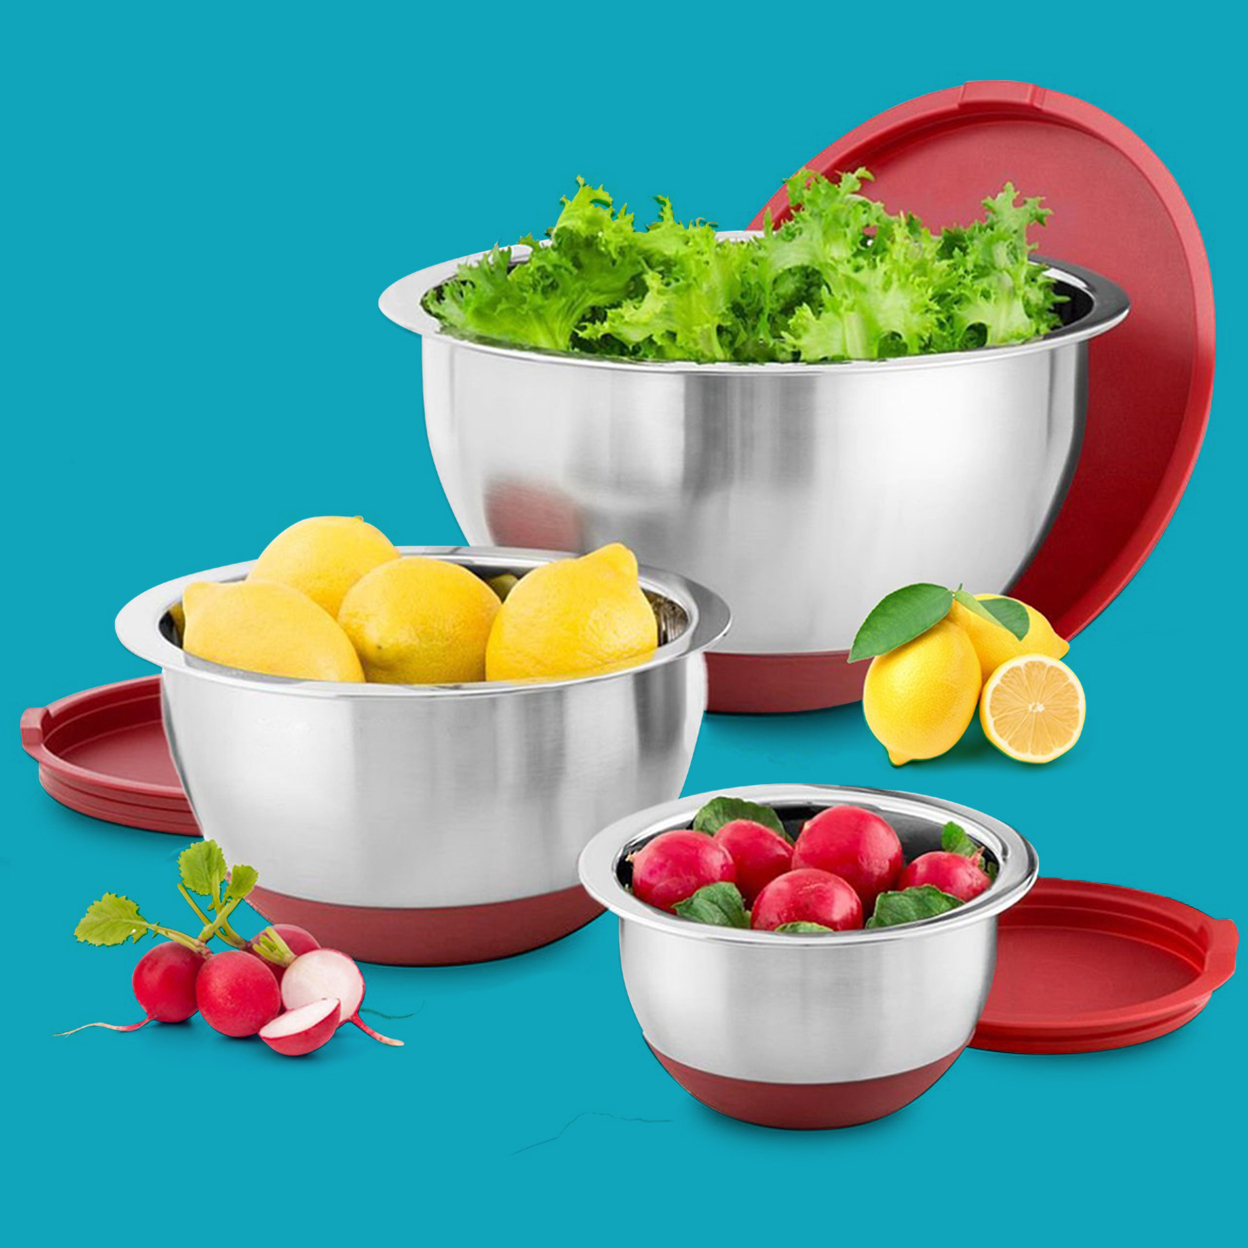 Blumwares 3-Piece Stainless Steel Mixing Bowls with Lids & Non-Skid Rubber Grip Bottoms   Set of 3 59b9aaa12a00e46d8e71d6d4